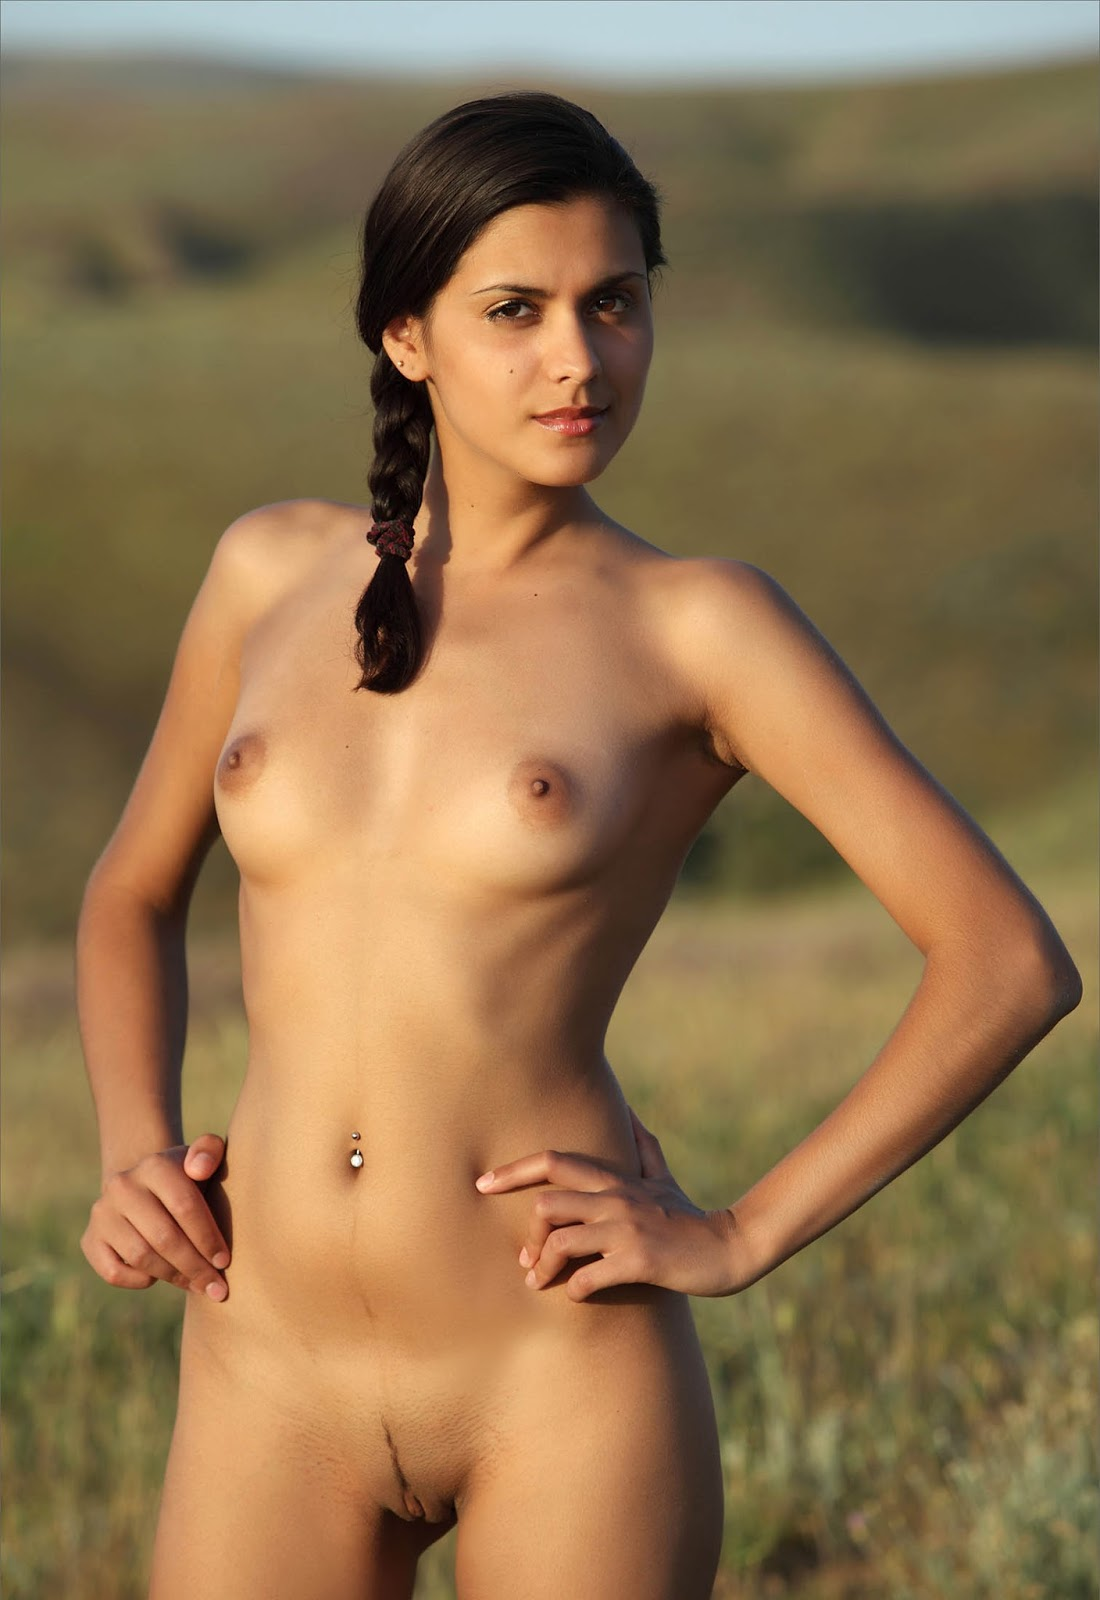 Hot And Sexy Girls Nude Photos Really Indian Girls-Bhabhi -3459